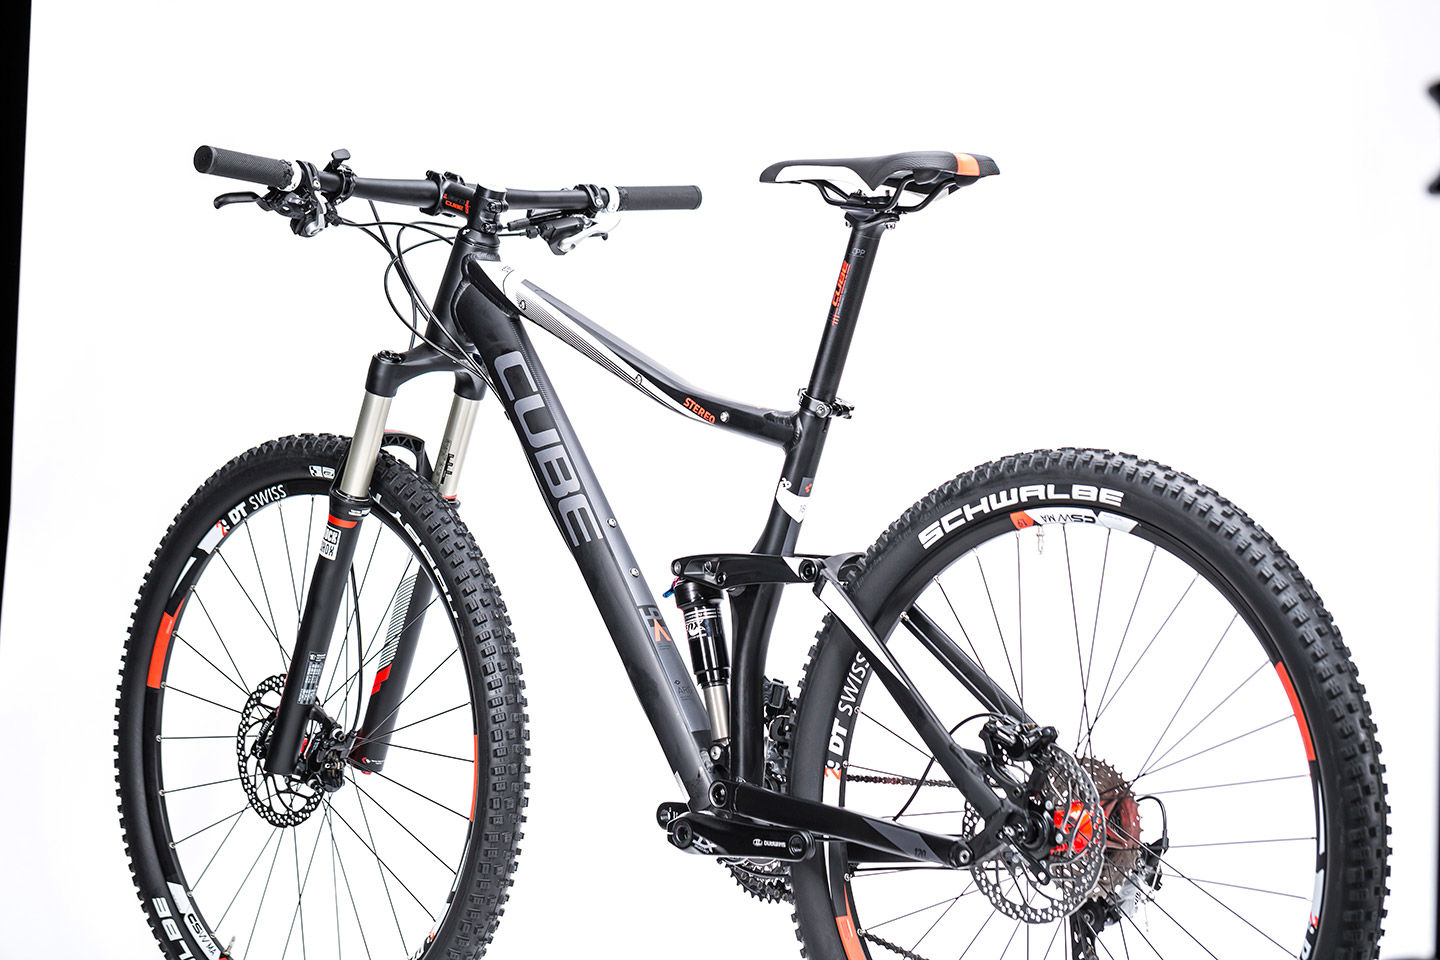 Cube Stereo 120 Hpa Pro 29 2015 Review The Bike List